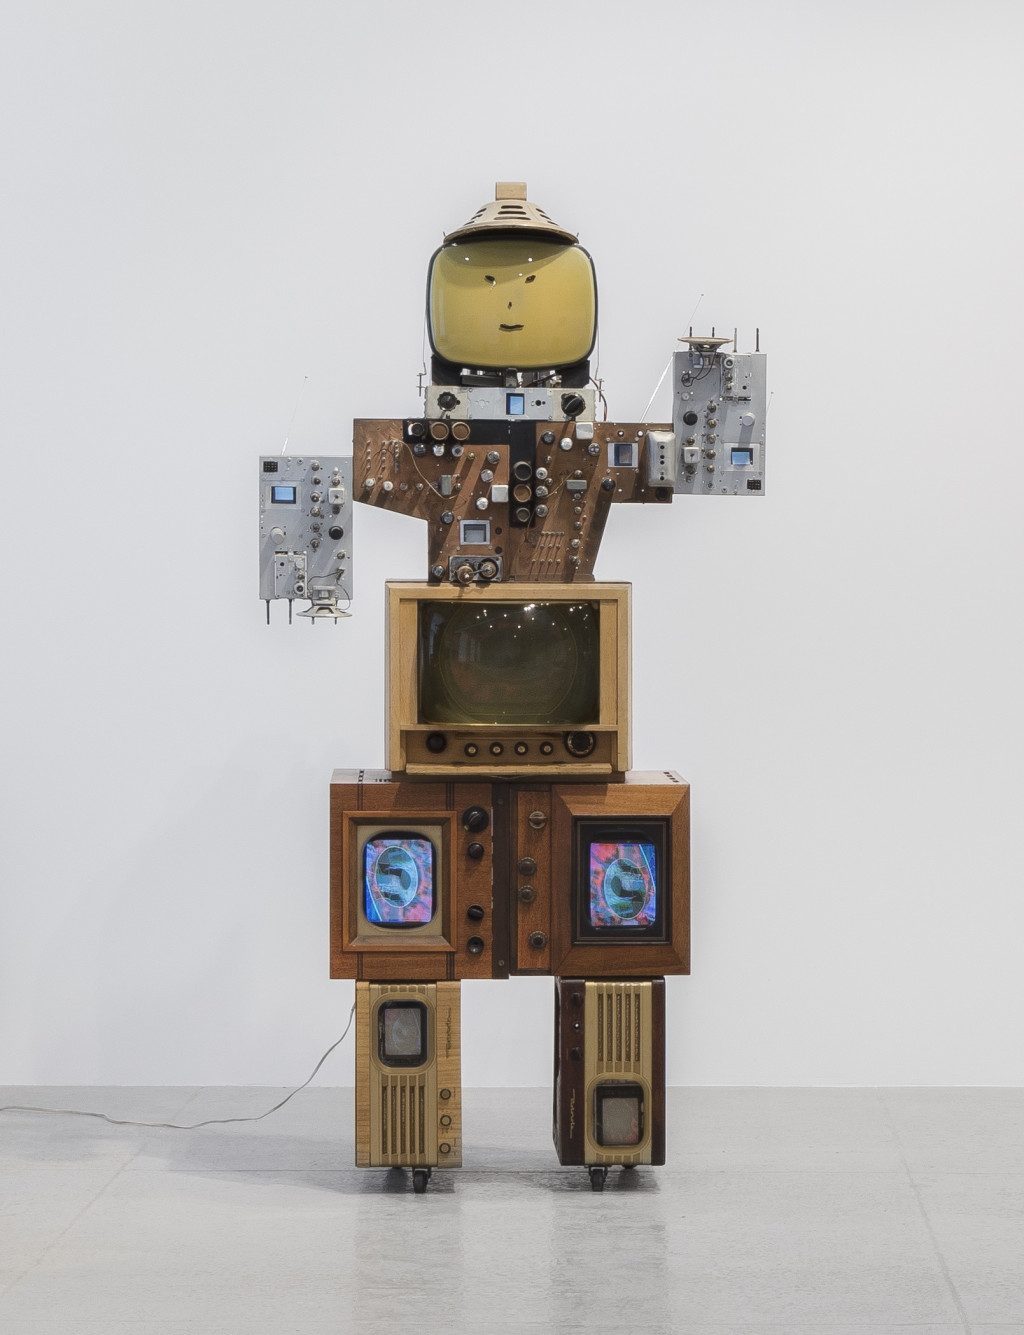 Nam June Paik, Uncle, 1986, Private Collection. Courtesy of Hauser & Wirth. © The Estate of Nam June Paik